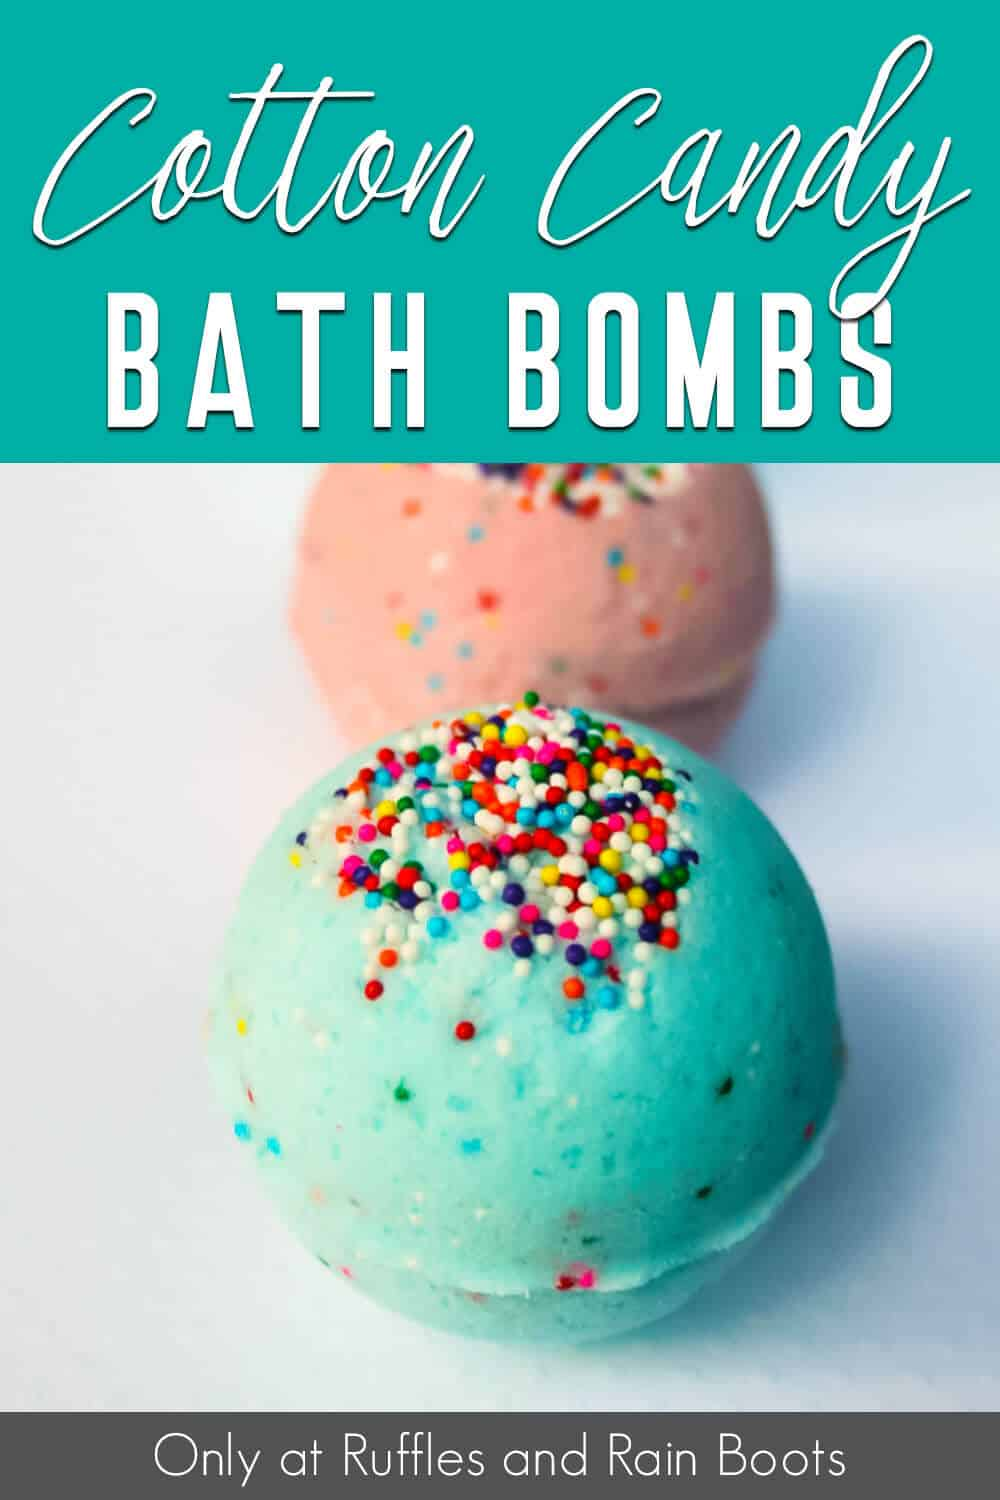 easy bath bombs with cotton candy scent and sprinkles with text which reads cotton candy bath bombs